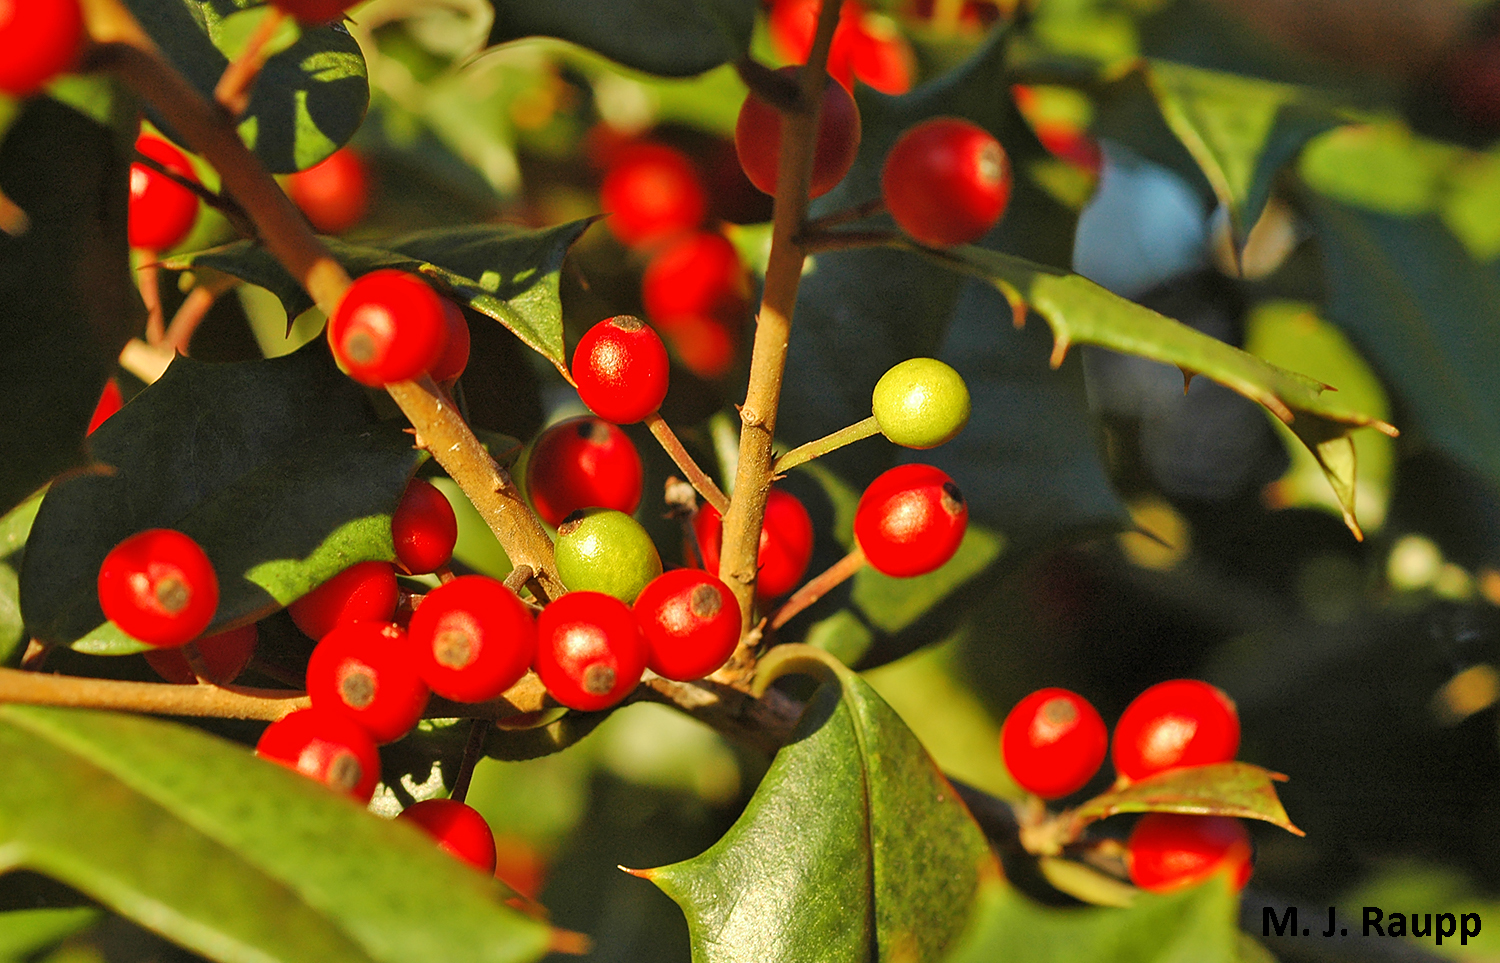 What's up with the green berries on the holly tree?